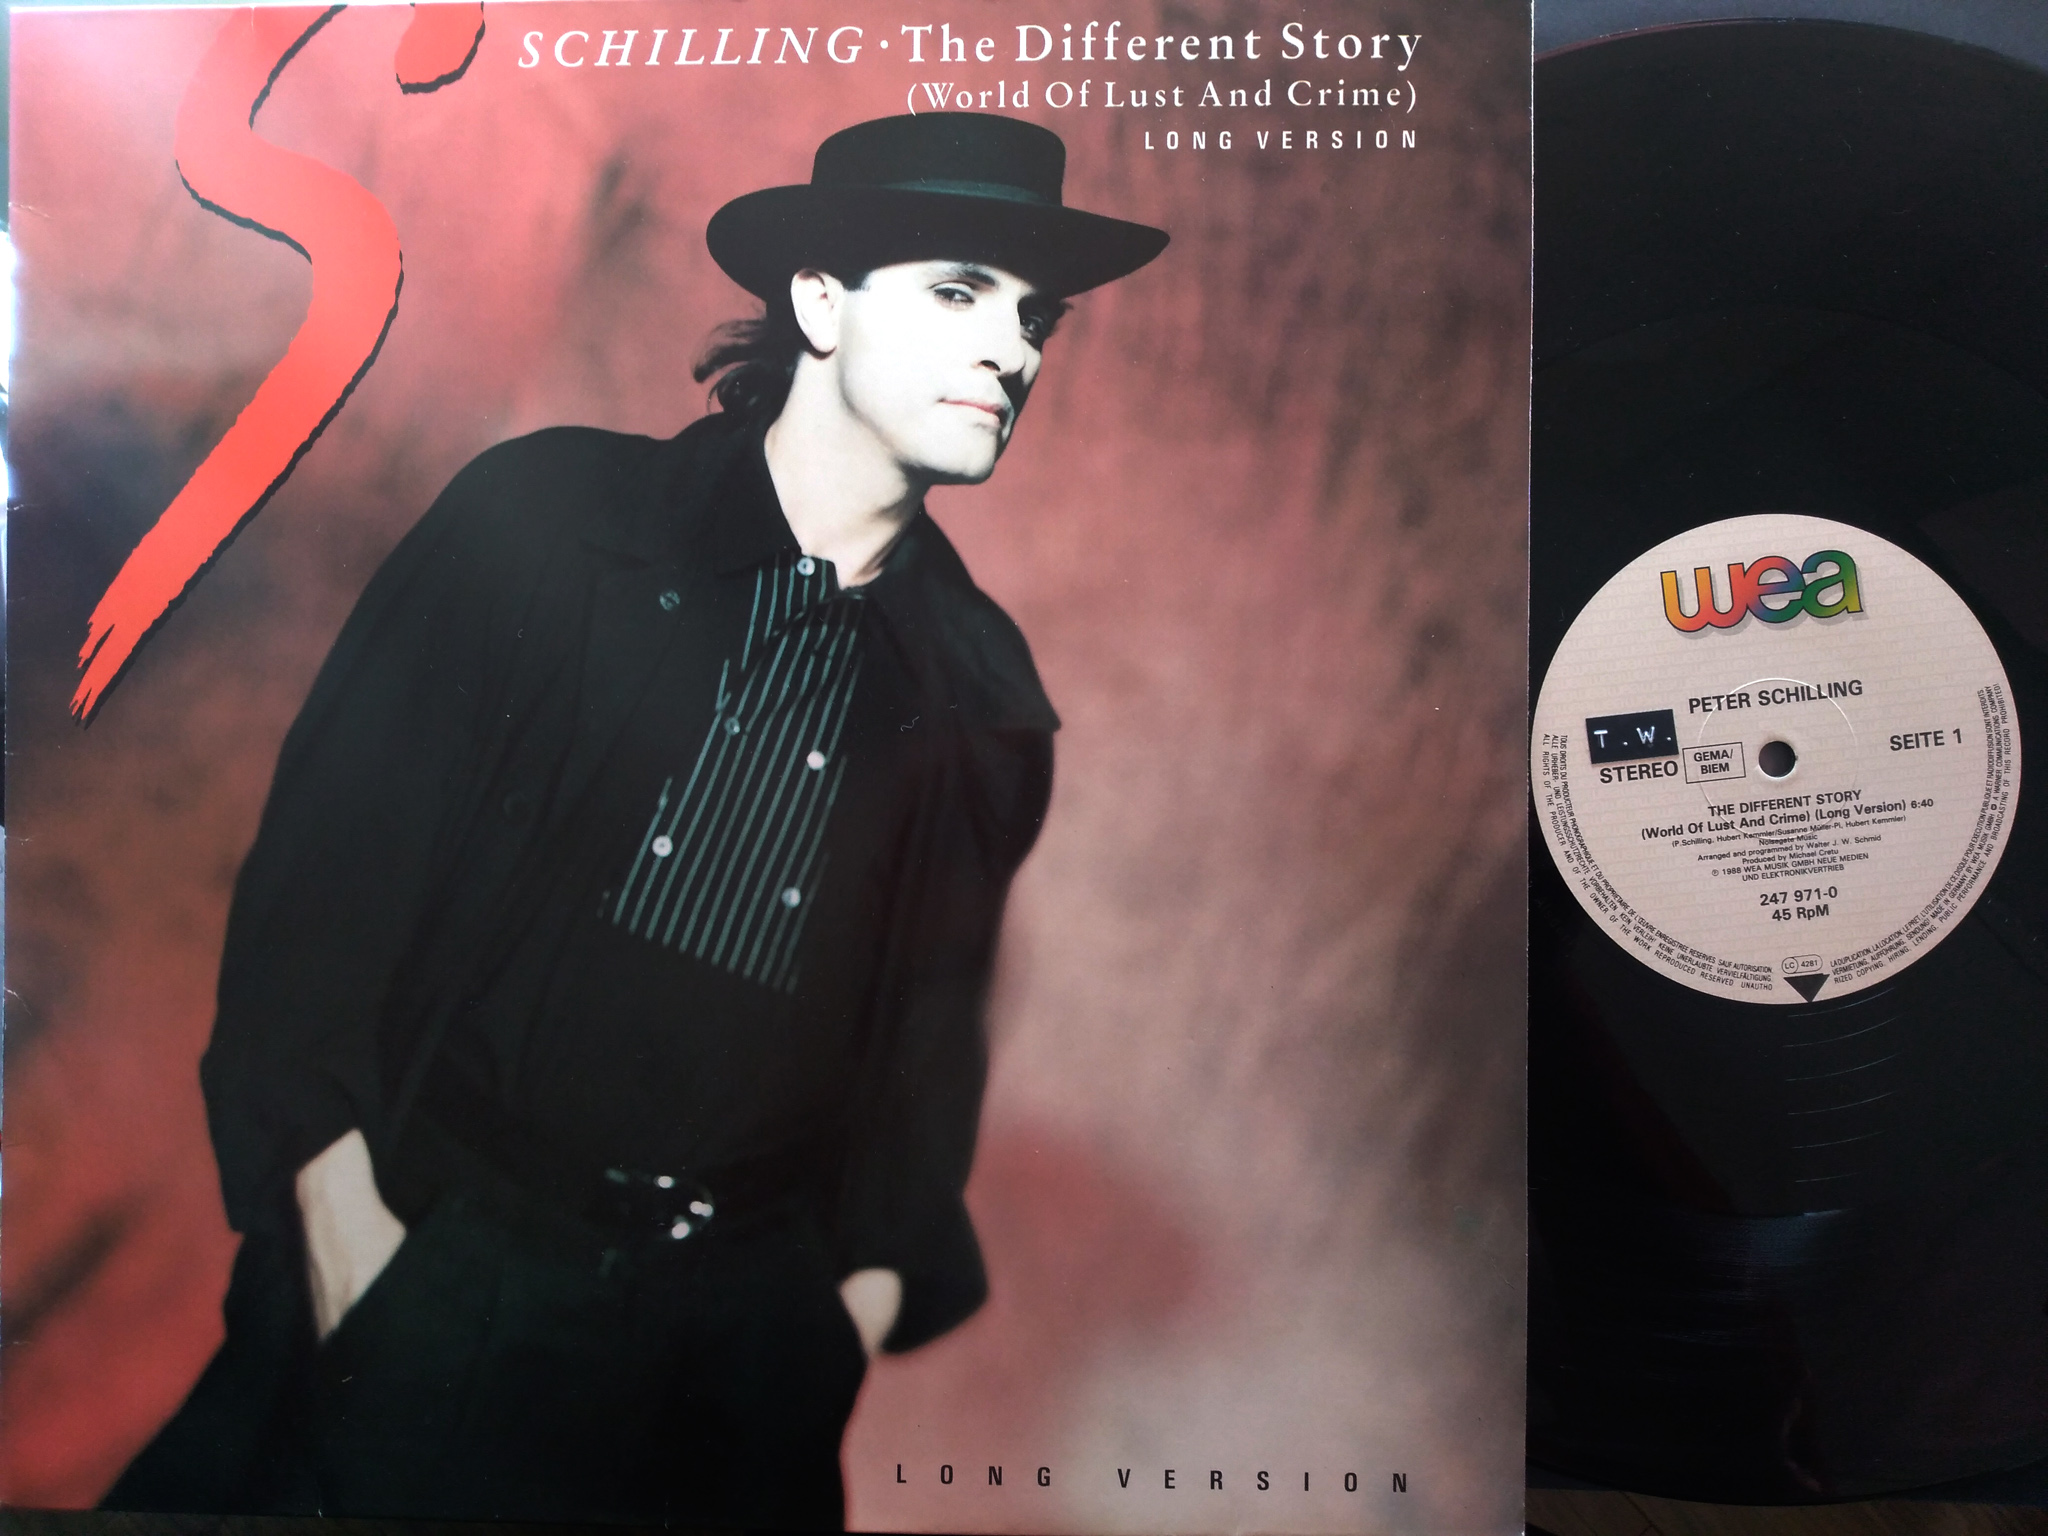 Peter Schilling - The Defferent Story